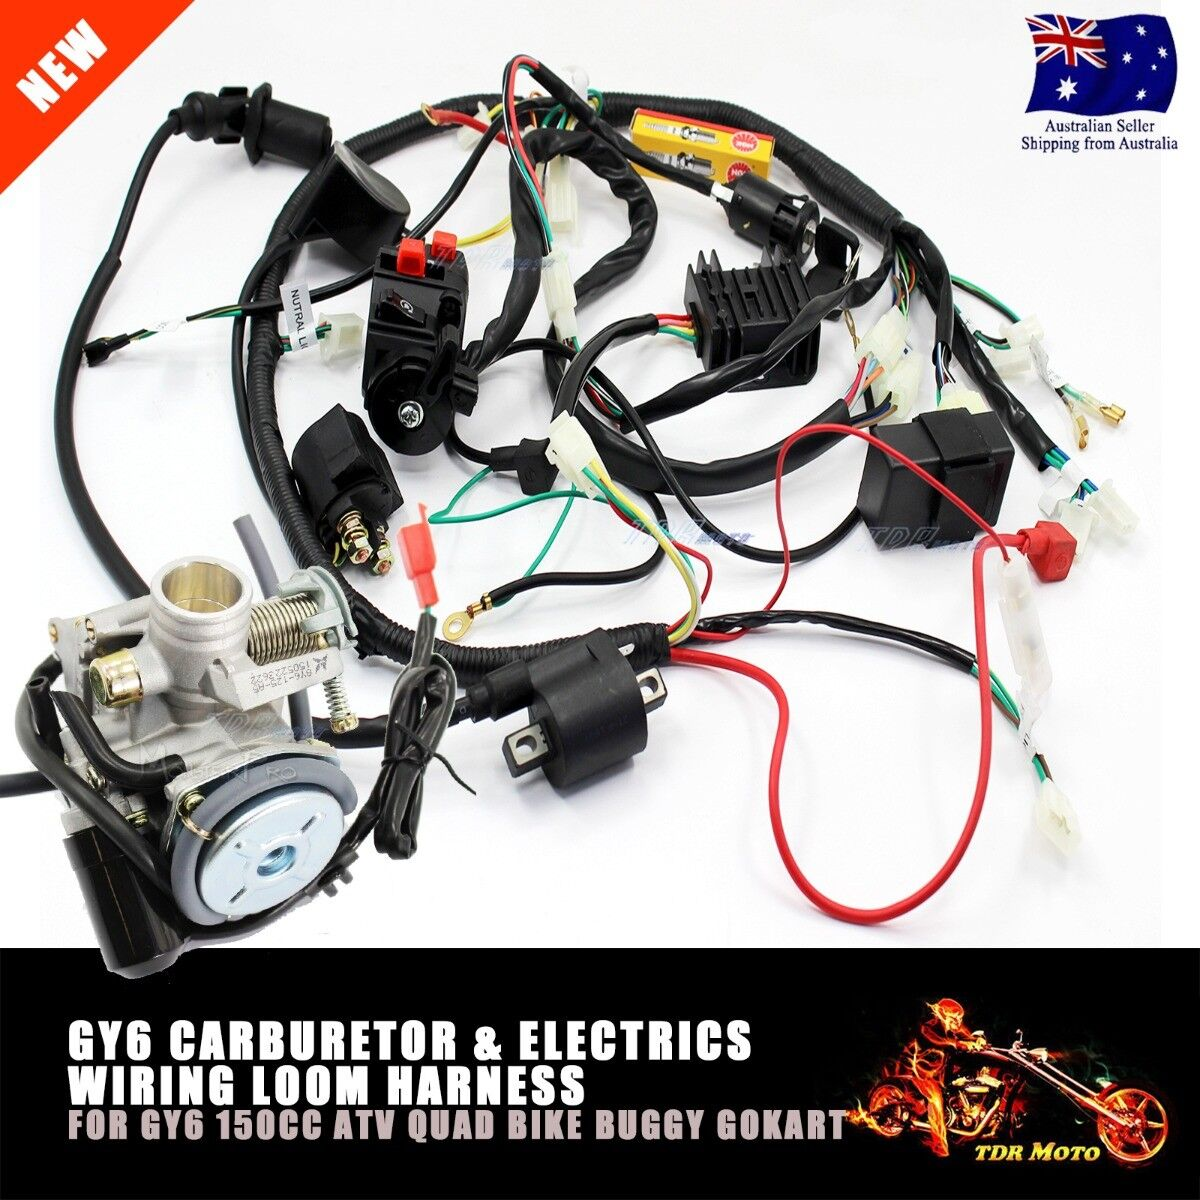 150cc Wiring Harness Diagram Online Four Wheelers Atv Connections Gy6 Carby Electrics Quad Buggy Kinroad